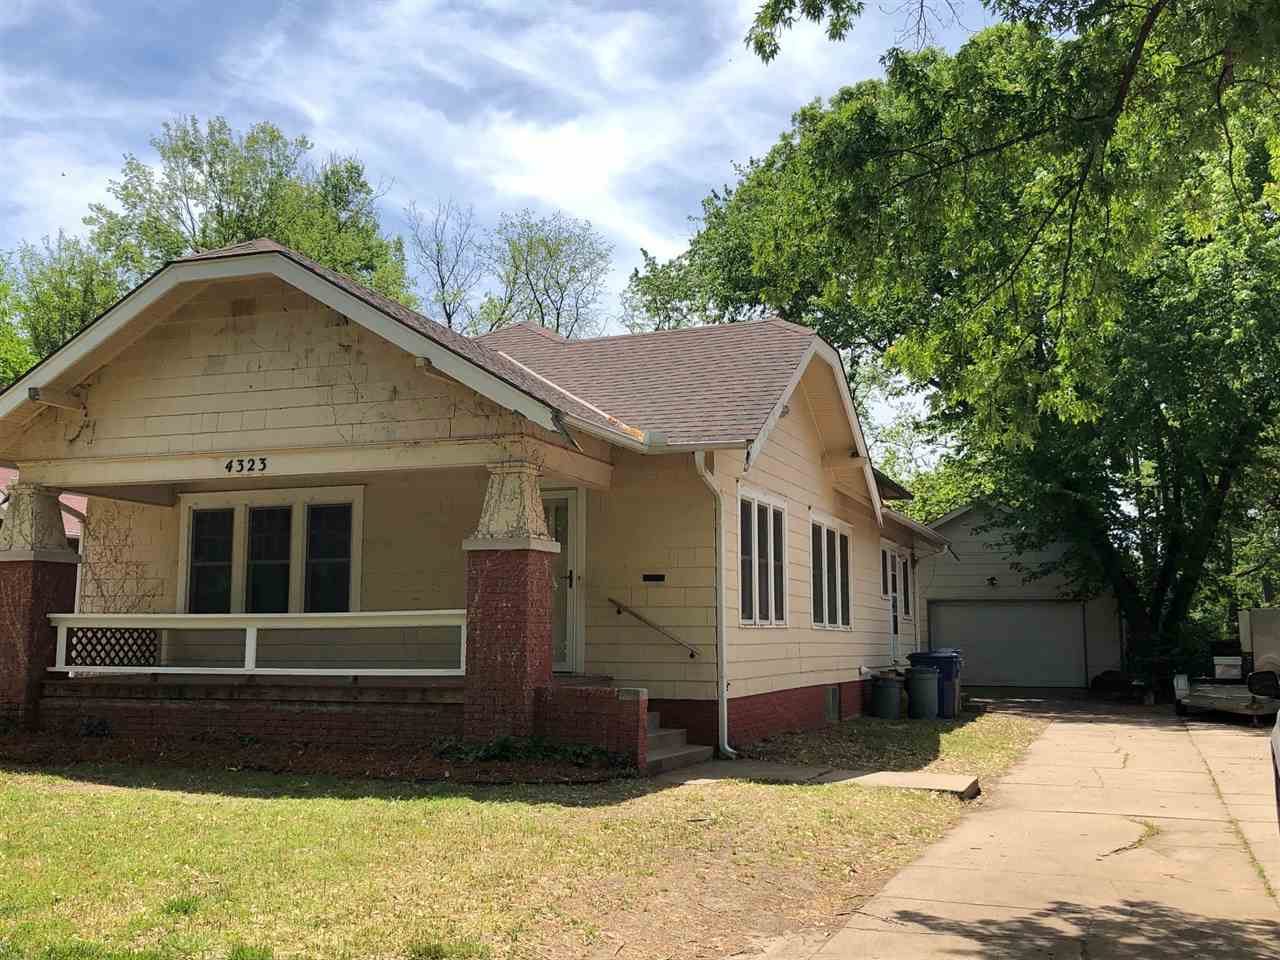 Bungalow in College Hill area with great space, Large rooms, Original hardwood floors.  Needs some T